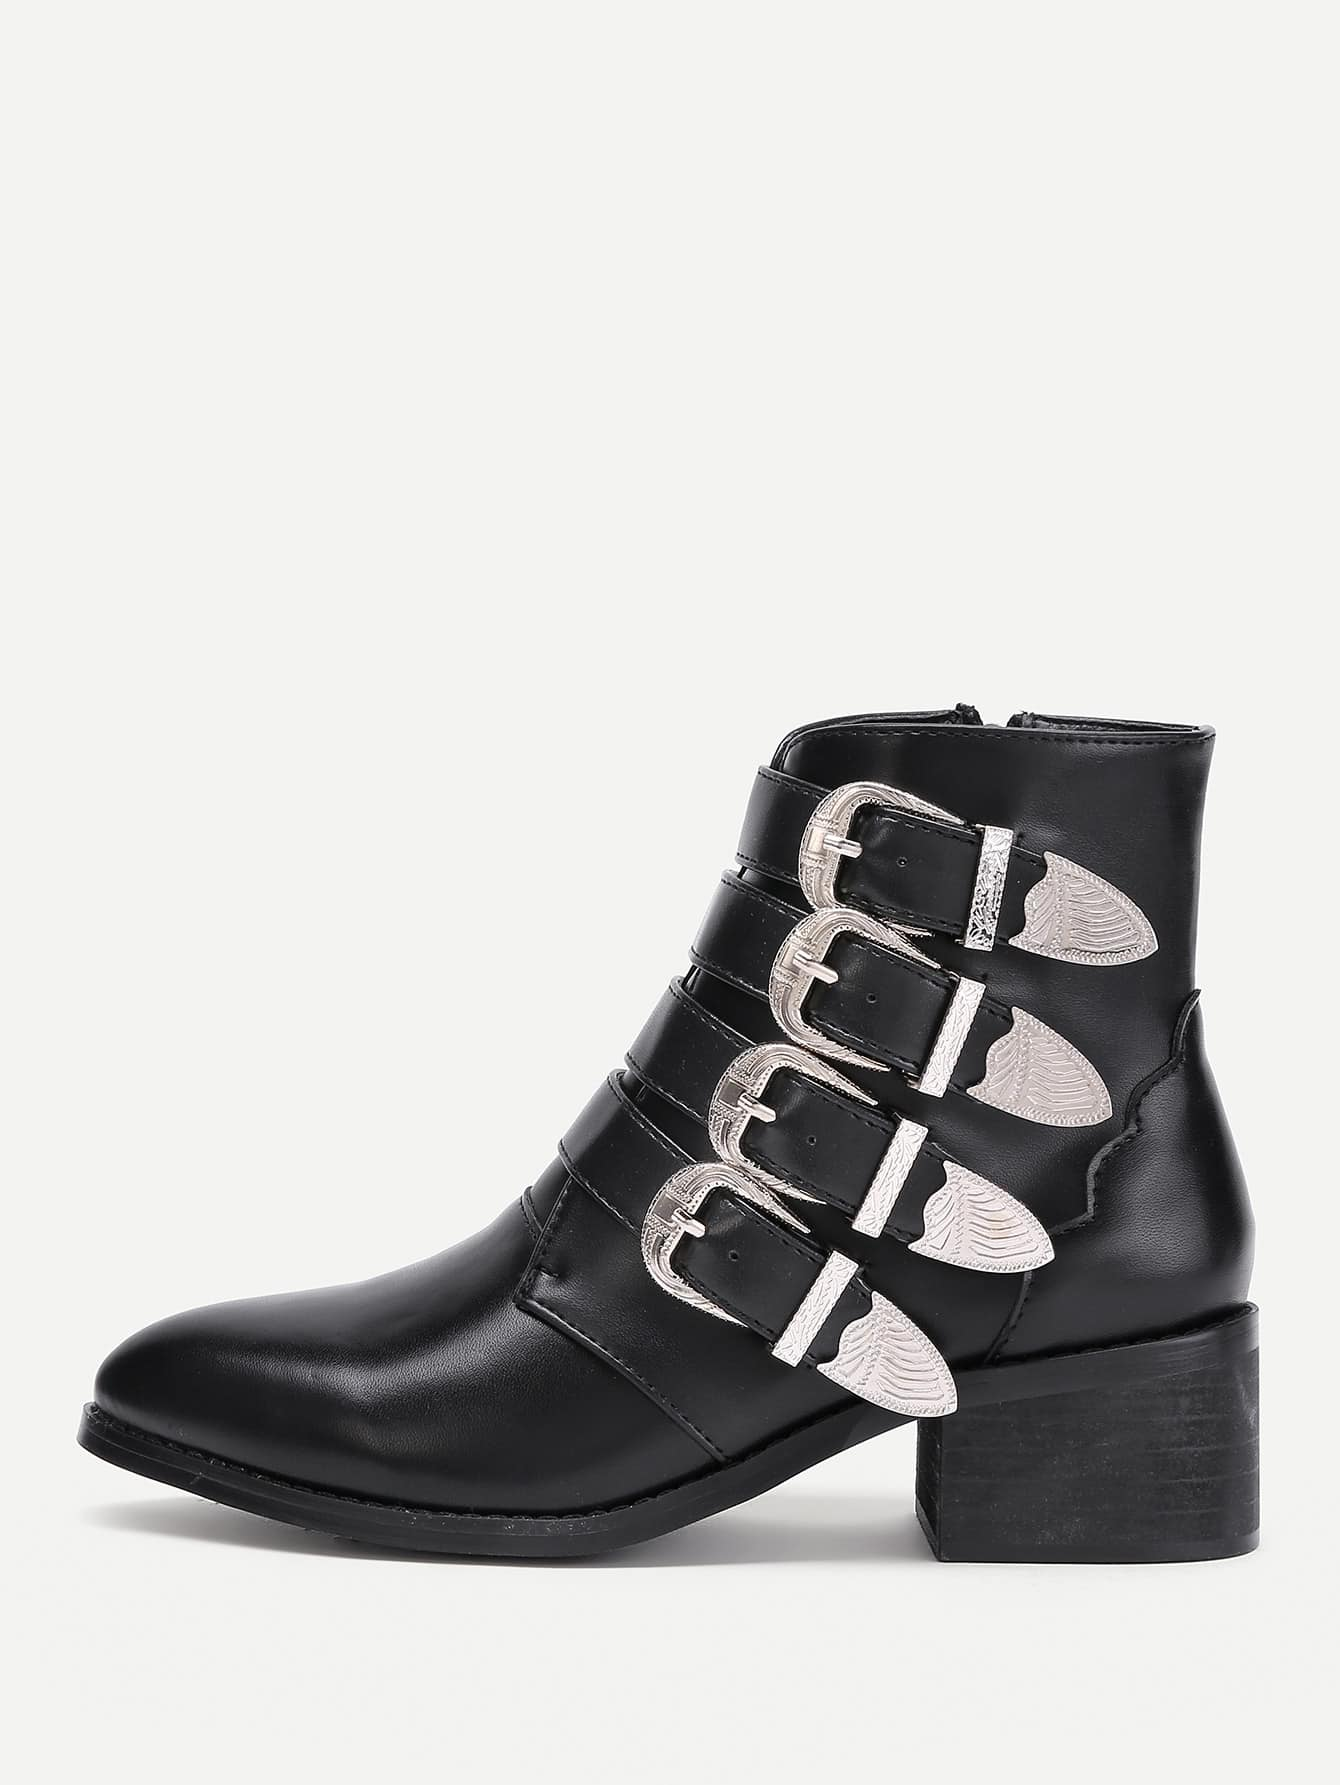 Купить со скидкой Buckle Decorated Side Zipper Ankle Boots